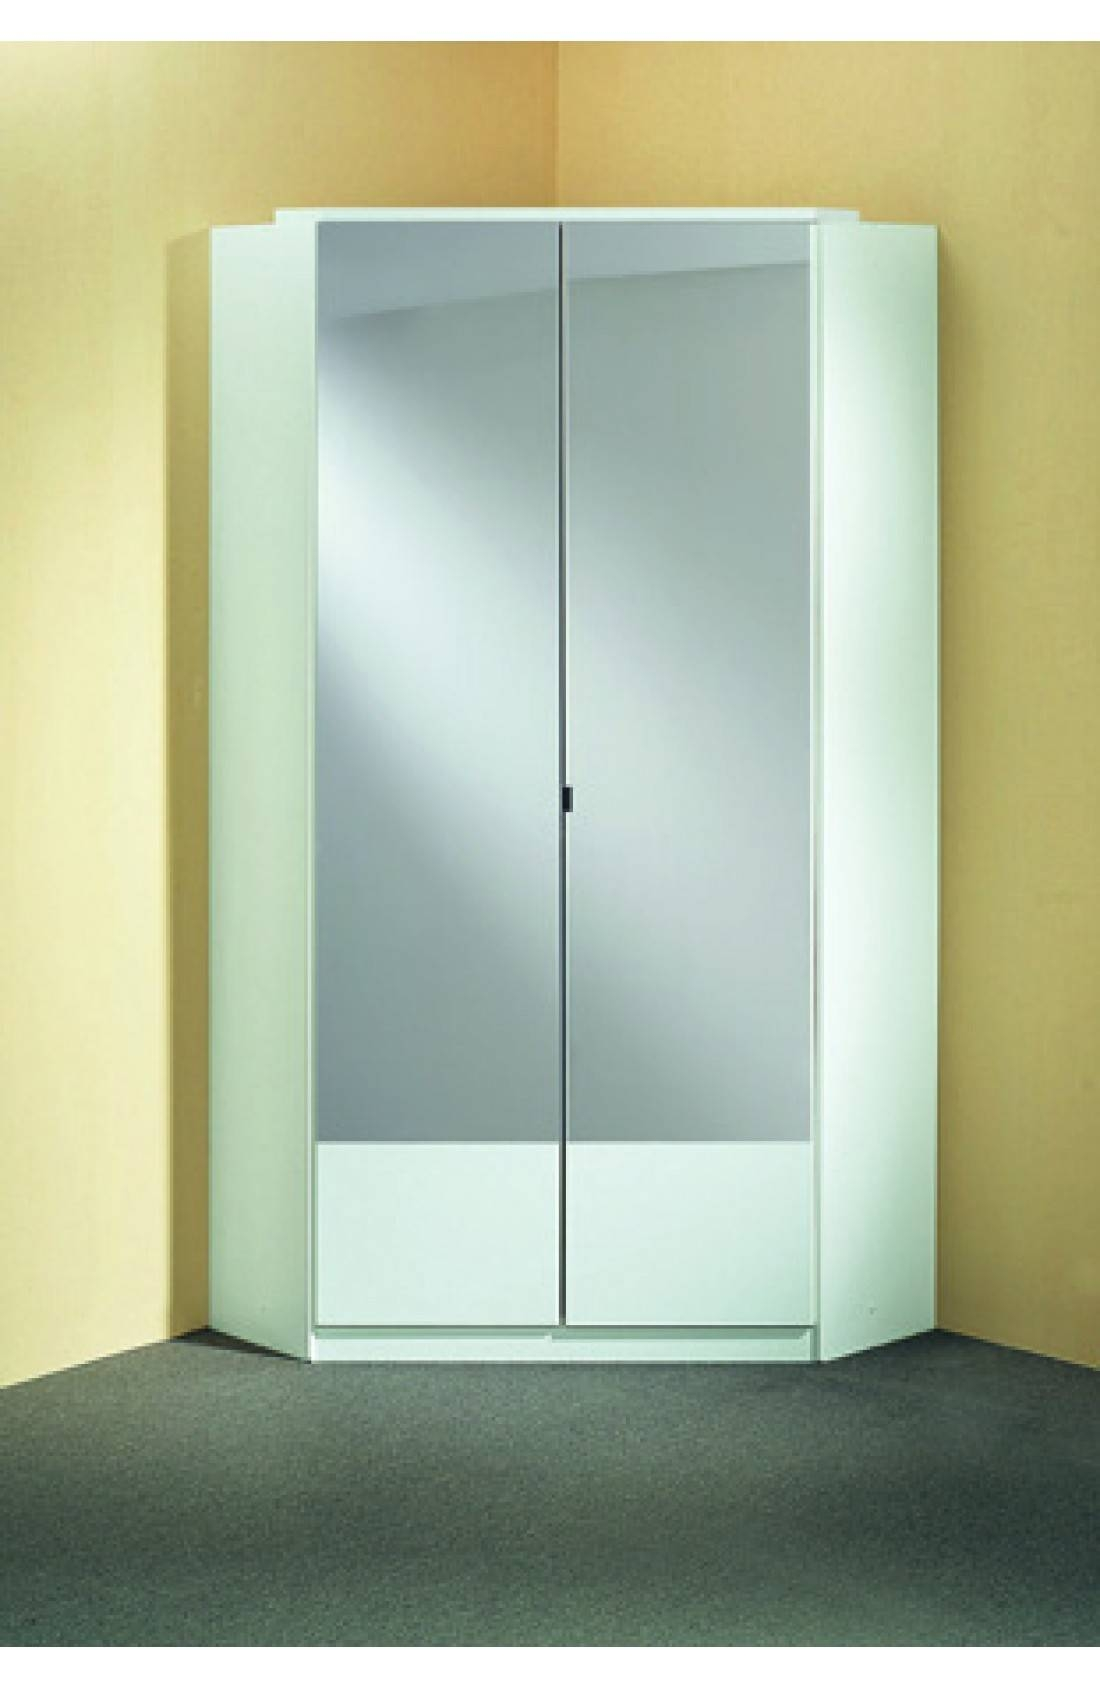 Slumberhaus 'imago' German Made Modern Alpine White & Mirror 2 in Corner Mirror Wardrobes (Image 13 of 15)